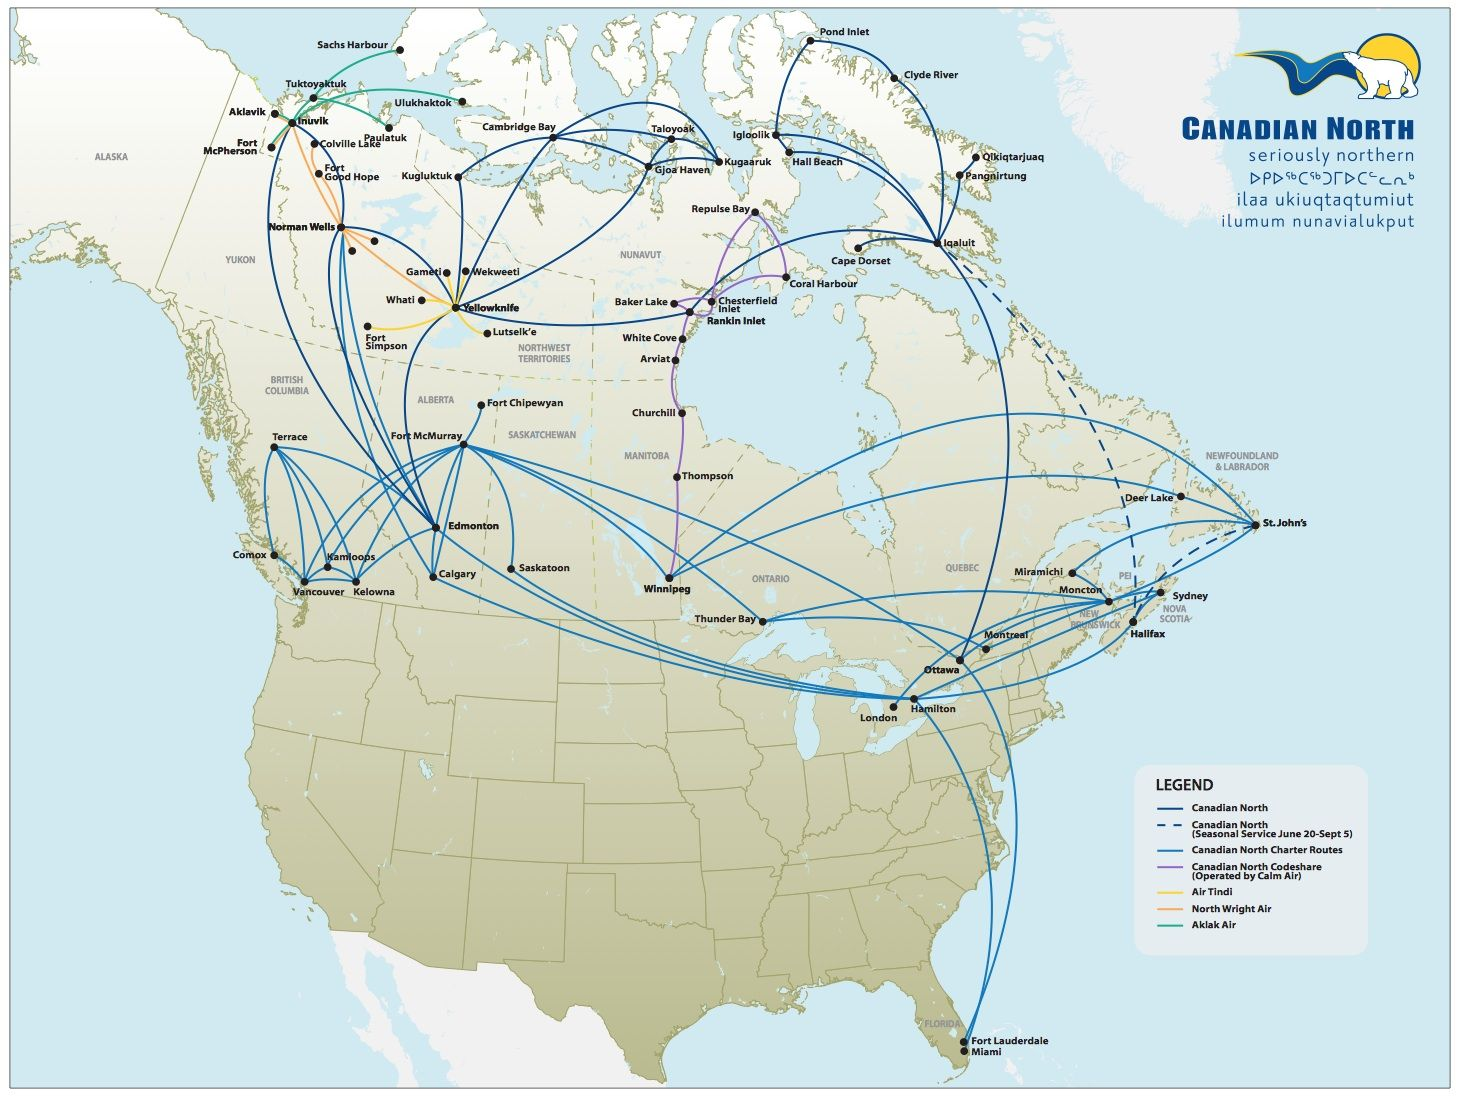 Canadian North & ociates Route Map 2014 | Aviation Art | Map ... on vietnam airlines route map, national airlines route map, syrian airlines route map, canadian rail route map, japan airlines route map, philippine airlines route map, united airlines route map, korean airlines route map, skymark airlines route map, american airlines route map, western airlines route map, singapore airlines route map, jackson airlines route map, solomon airlines route map, canadian airlines flights, skywest airlines route map, shanghai airlines route map, lan chile airlines route map, china airlines route map, hawaiian airlines route map,